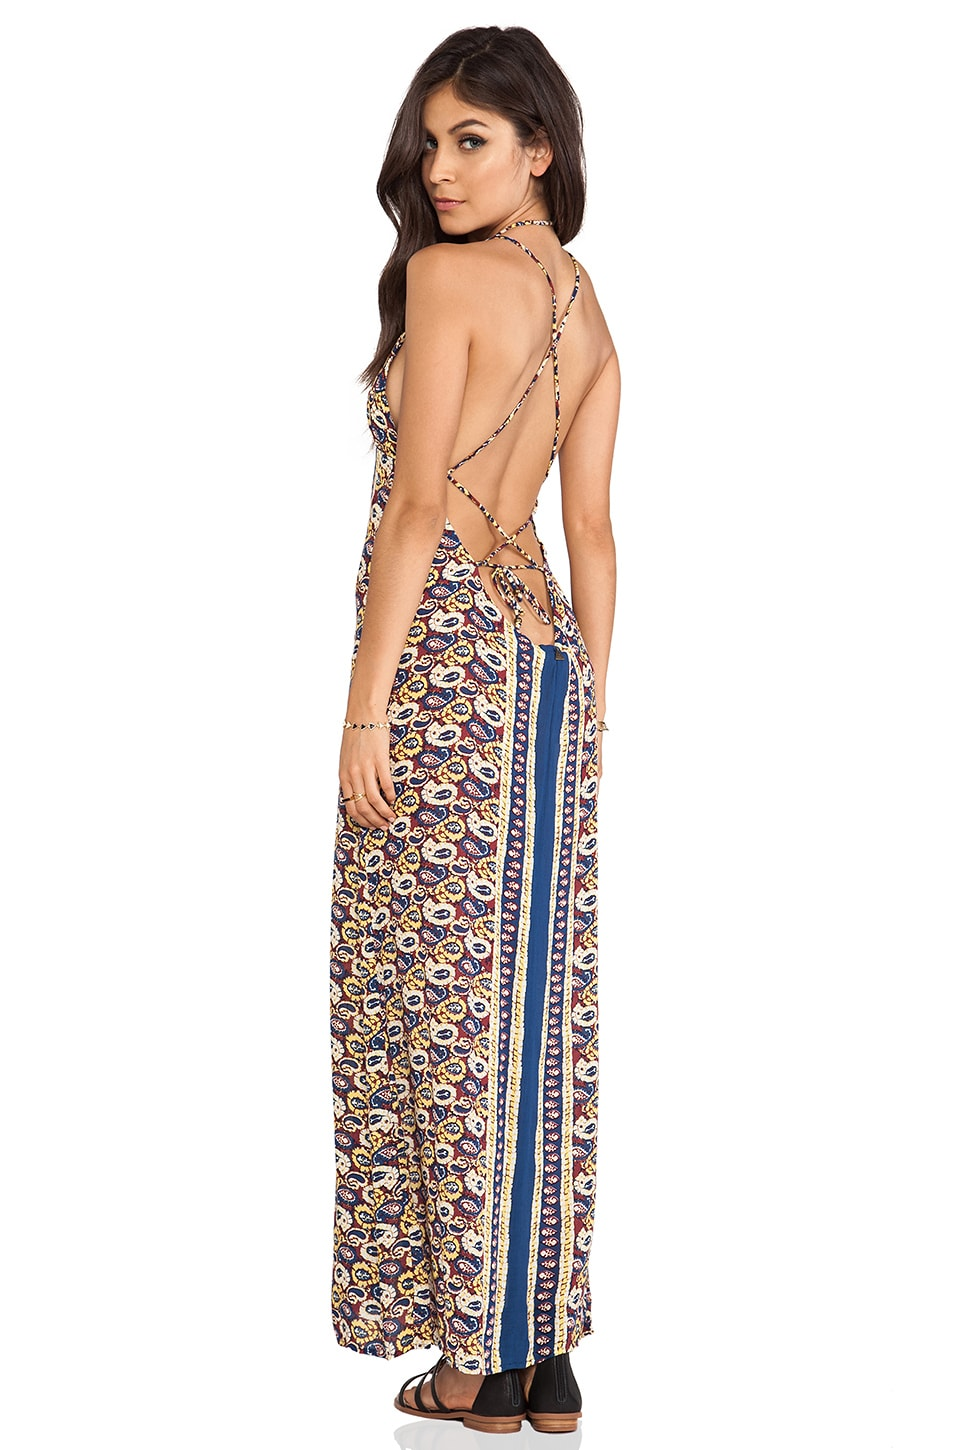 Tallow Verve Maxi Dress in Tiki Paisley